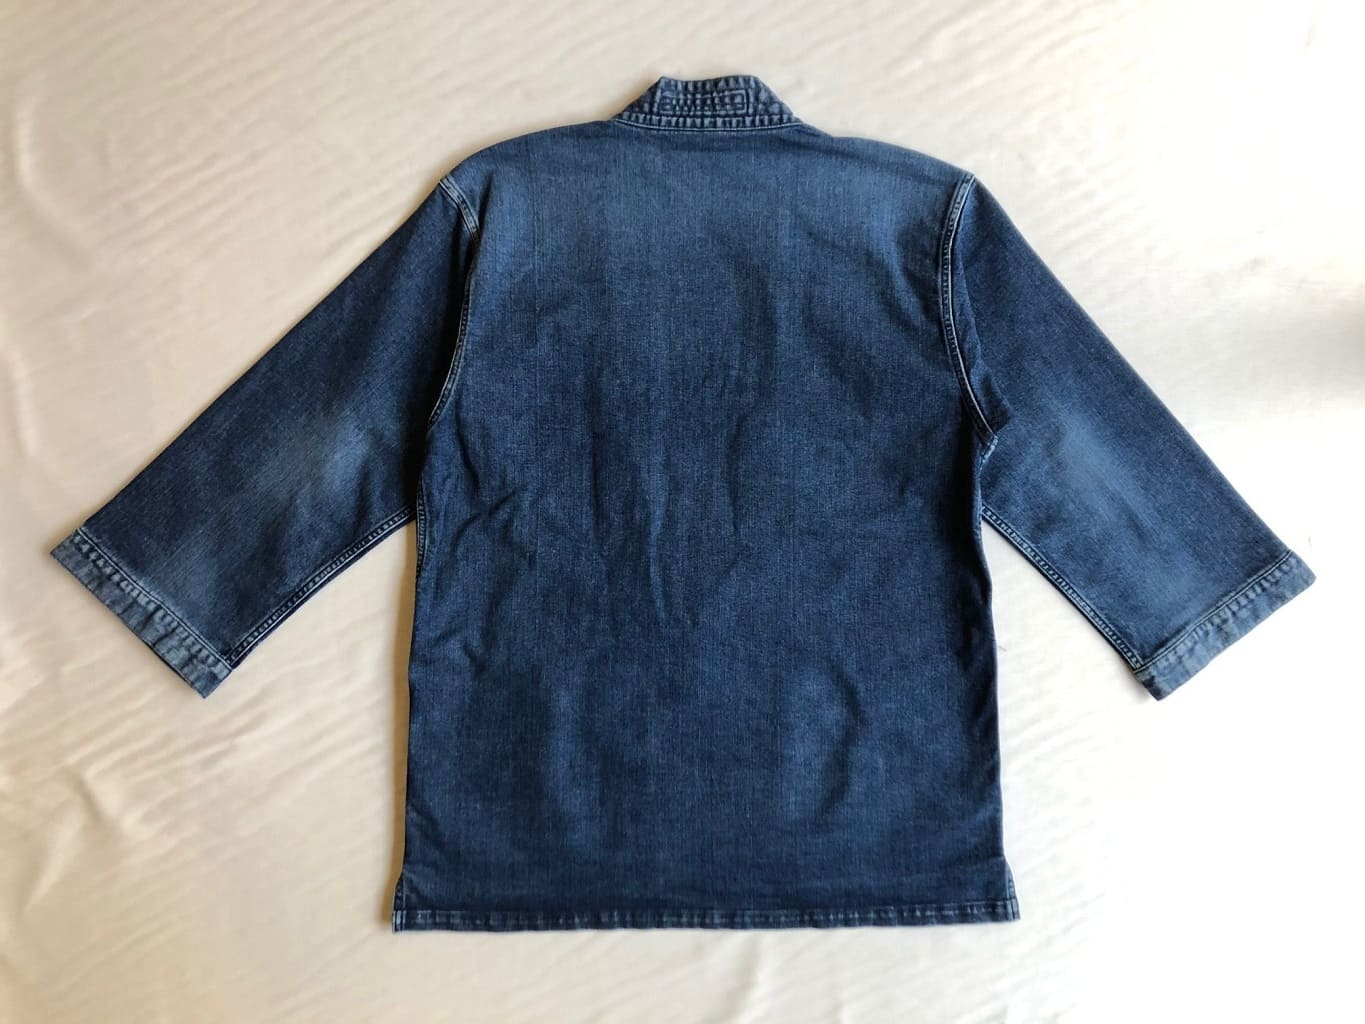 Kimono Denim Jacket - Long Sleeve